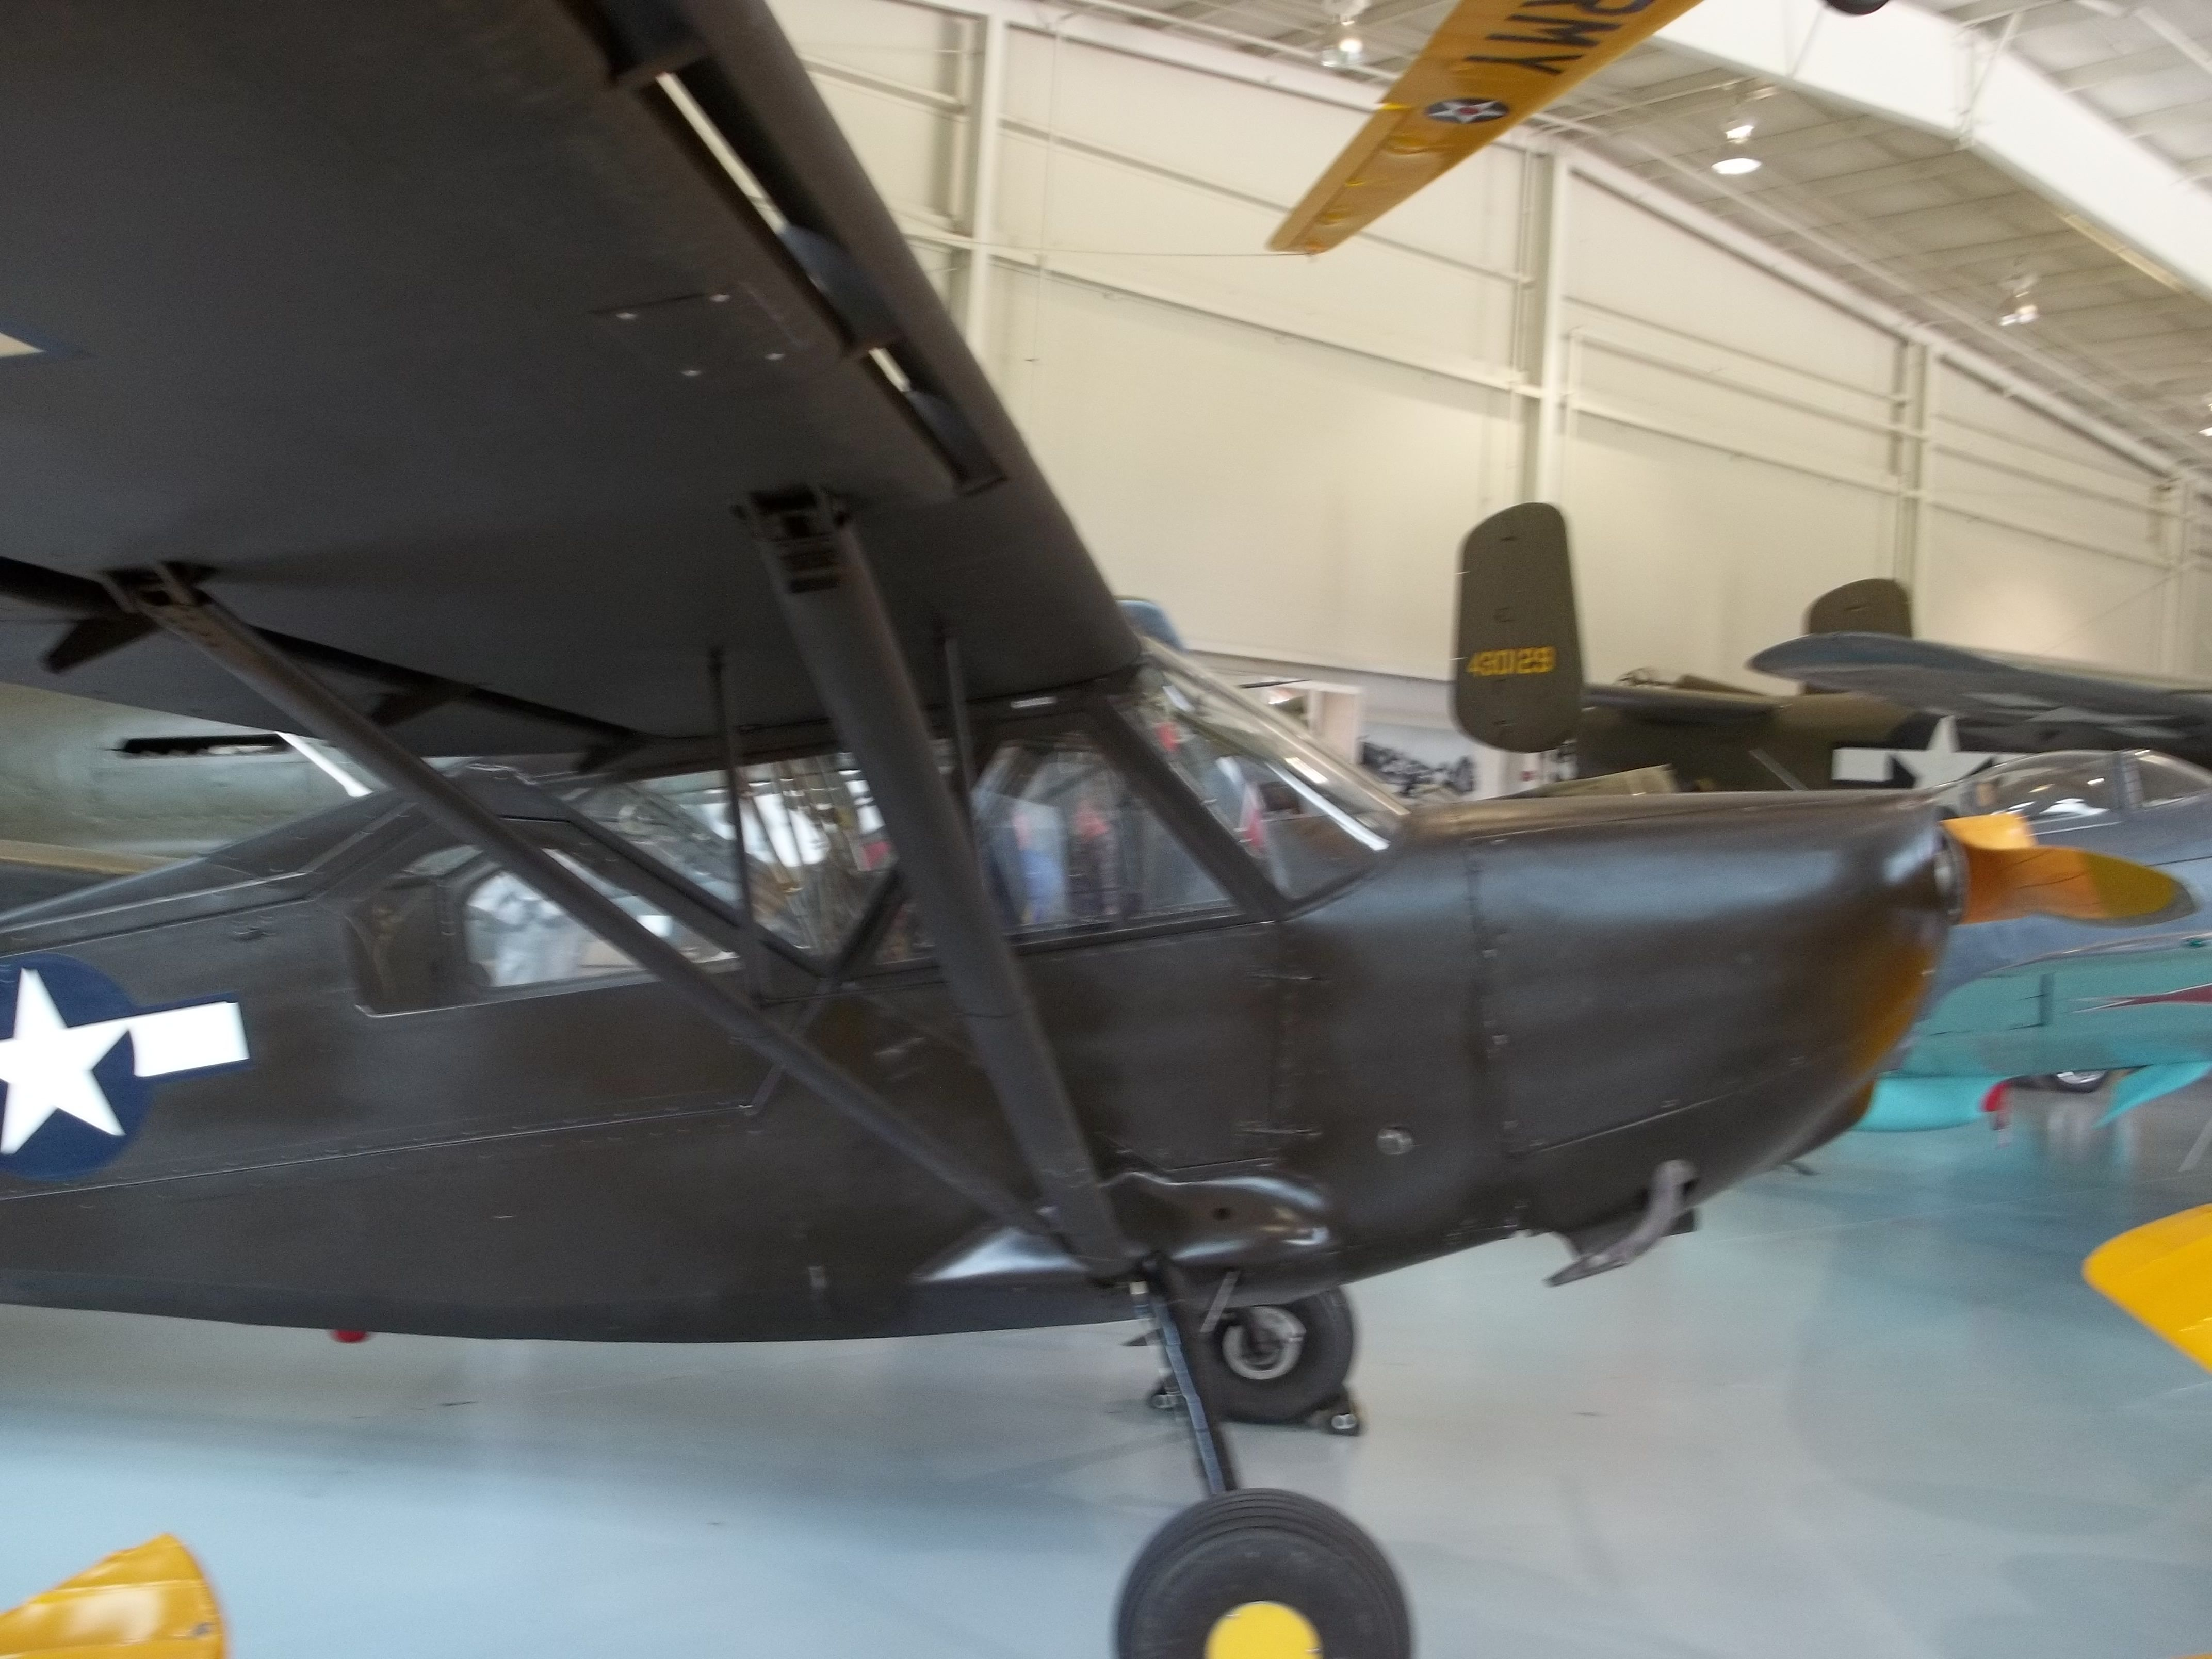 1944 Stinson L5-E Sentinel larger nicknamed 'Grasshopper' as it could get in